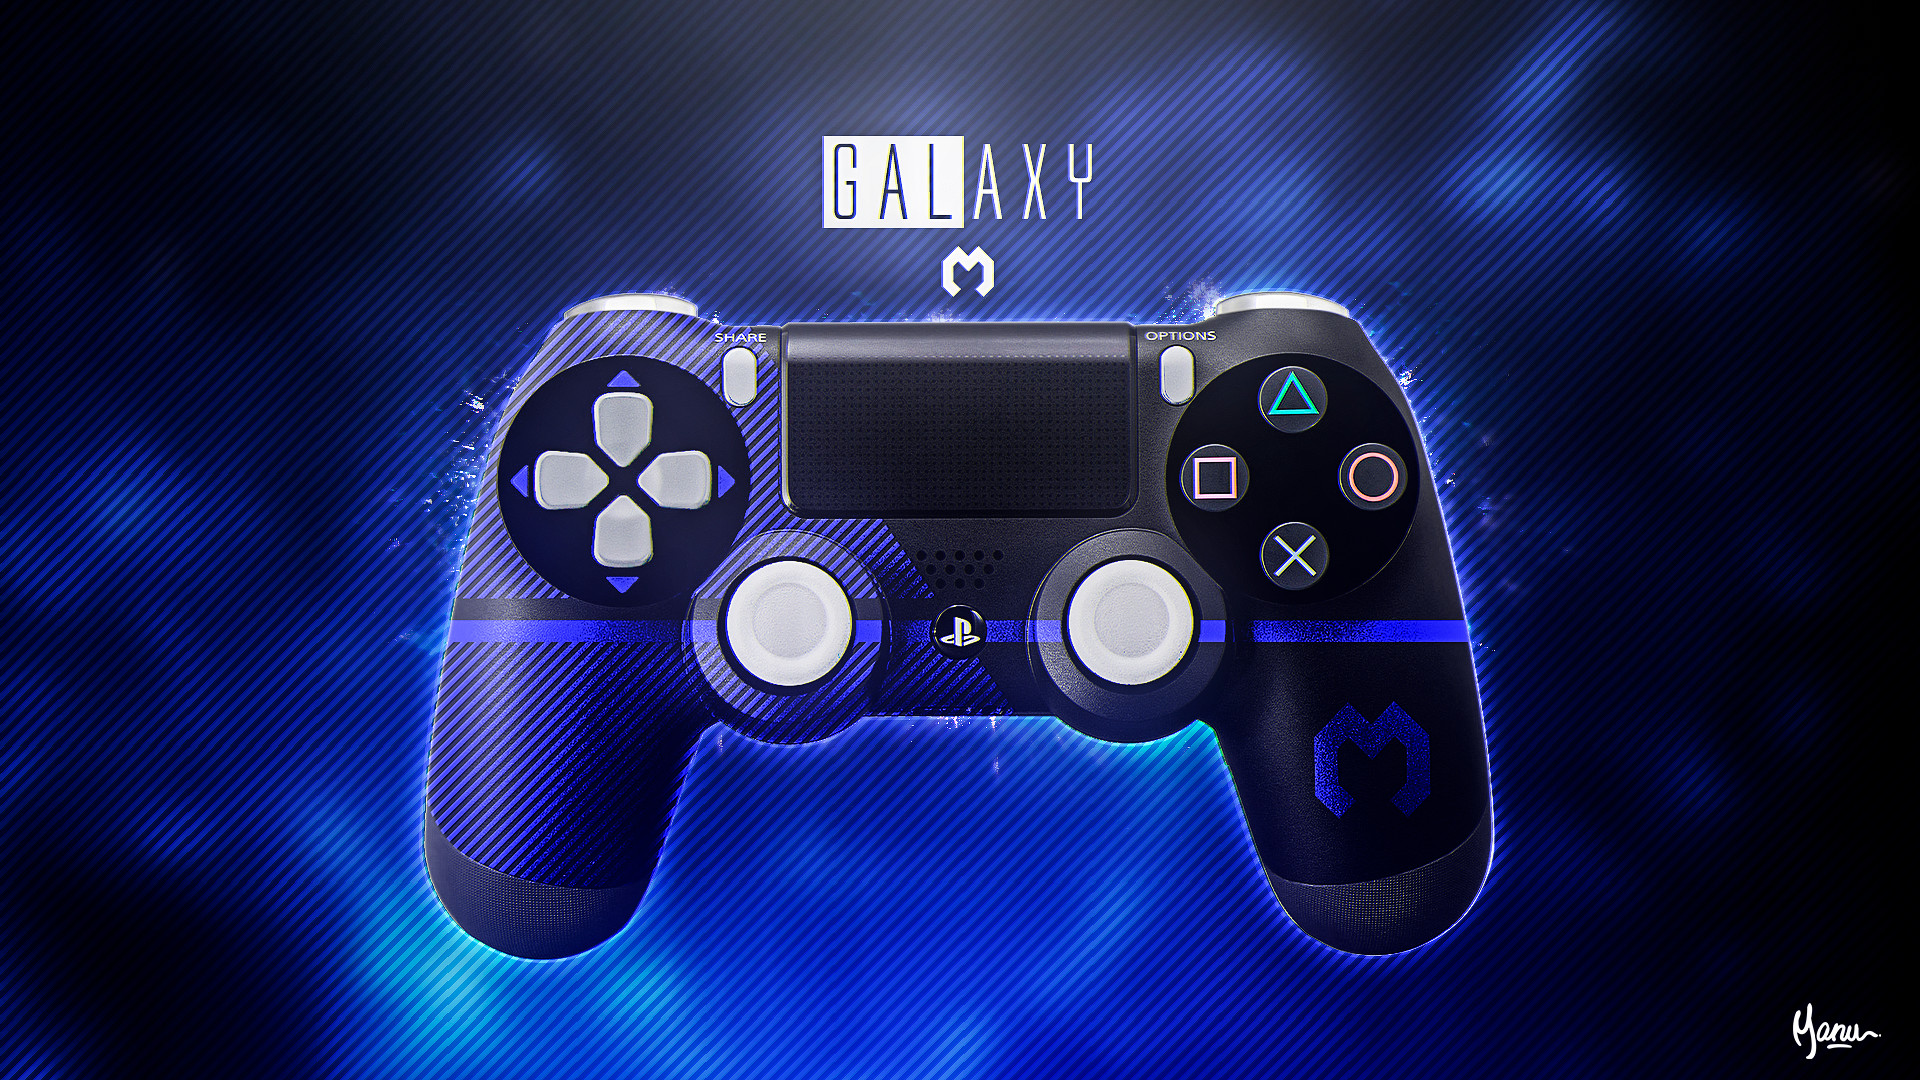 1920x1080 ... Adveirsement Personal Scuf - Galaxy by manufuentes9